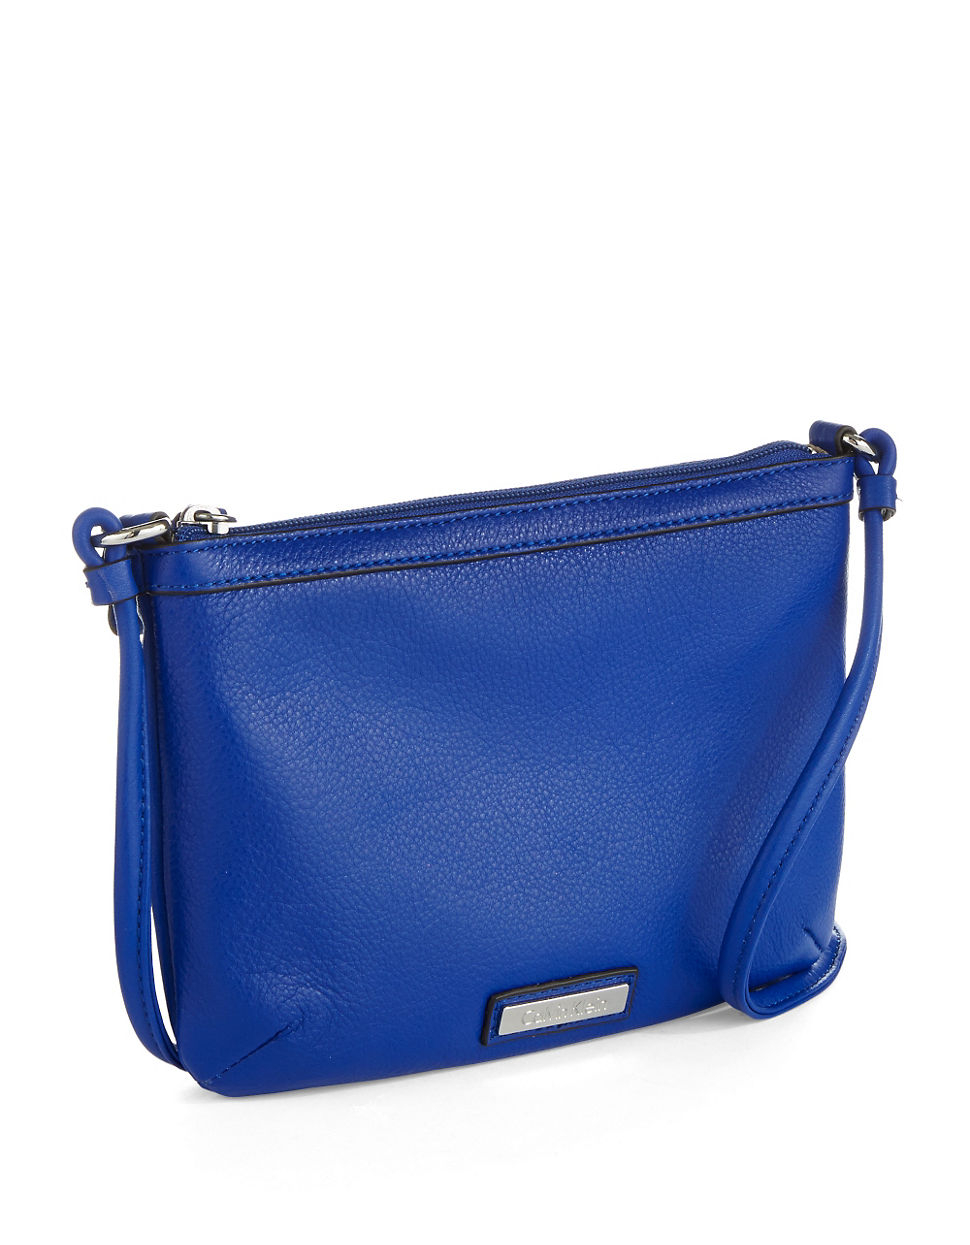 Calvin Klein Pebbled Leather Crossbody Bag in Blue (Retro Blue)